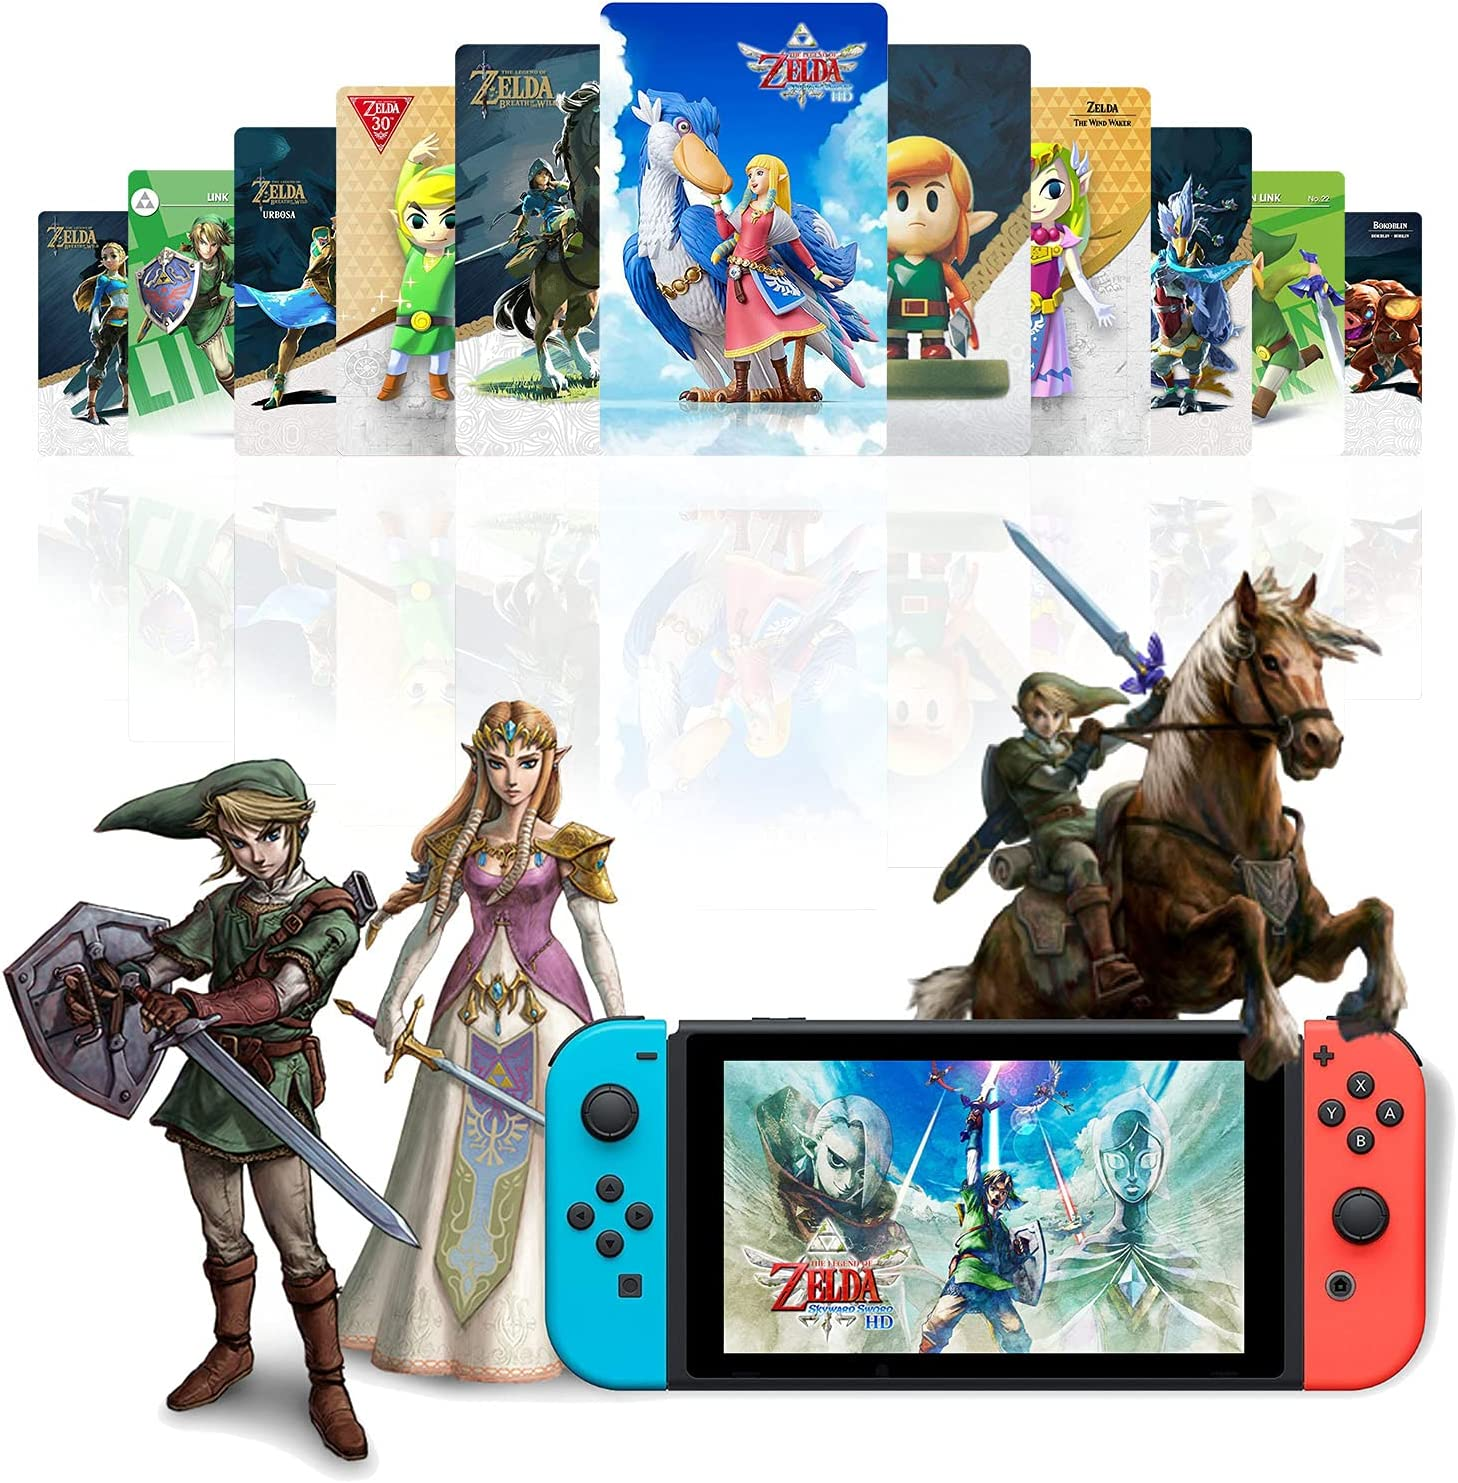 25Pcs NFC Tags Game Cards for Zelda:Skyward Max 46% OFF of New arrival Sword The Legend